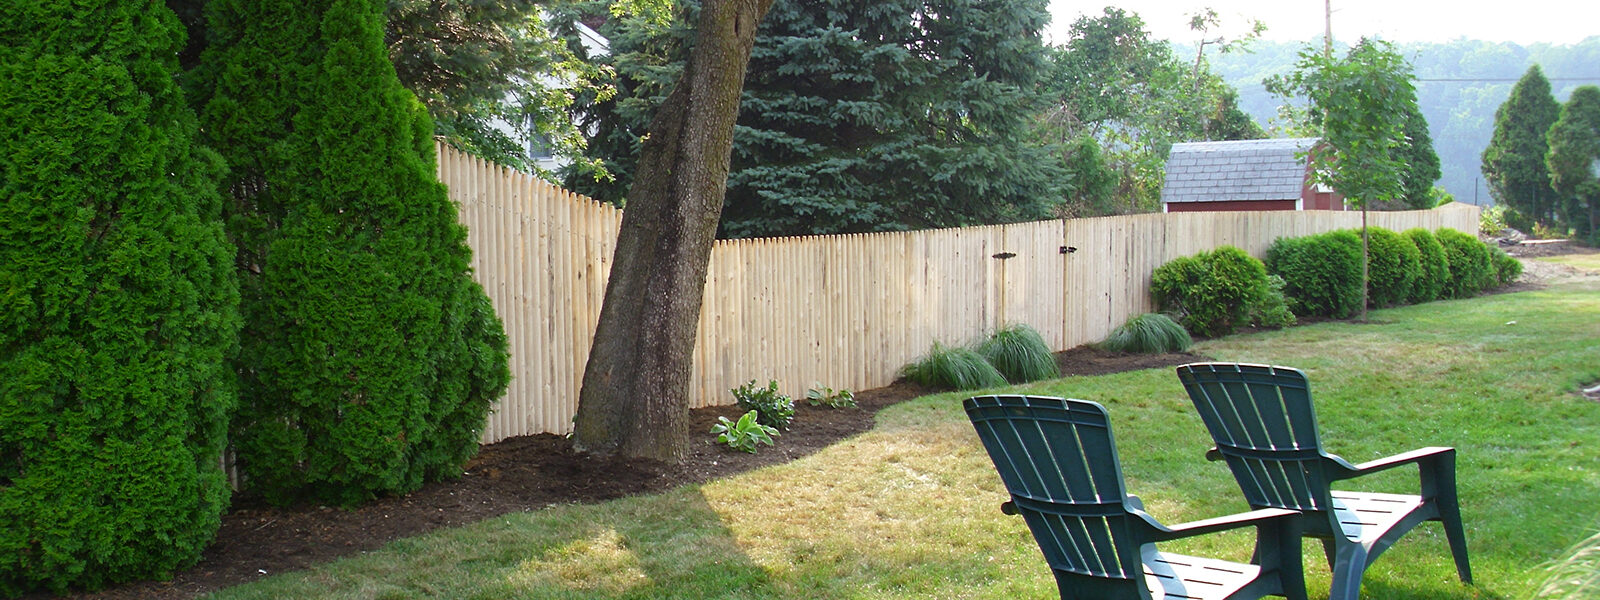 Stockade fence in yard with gate